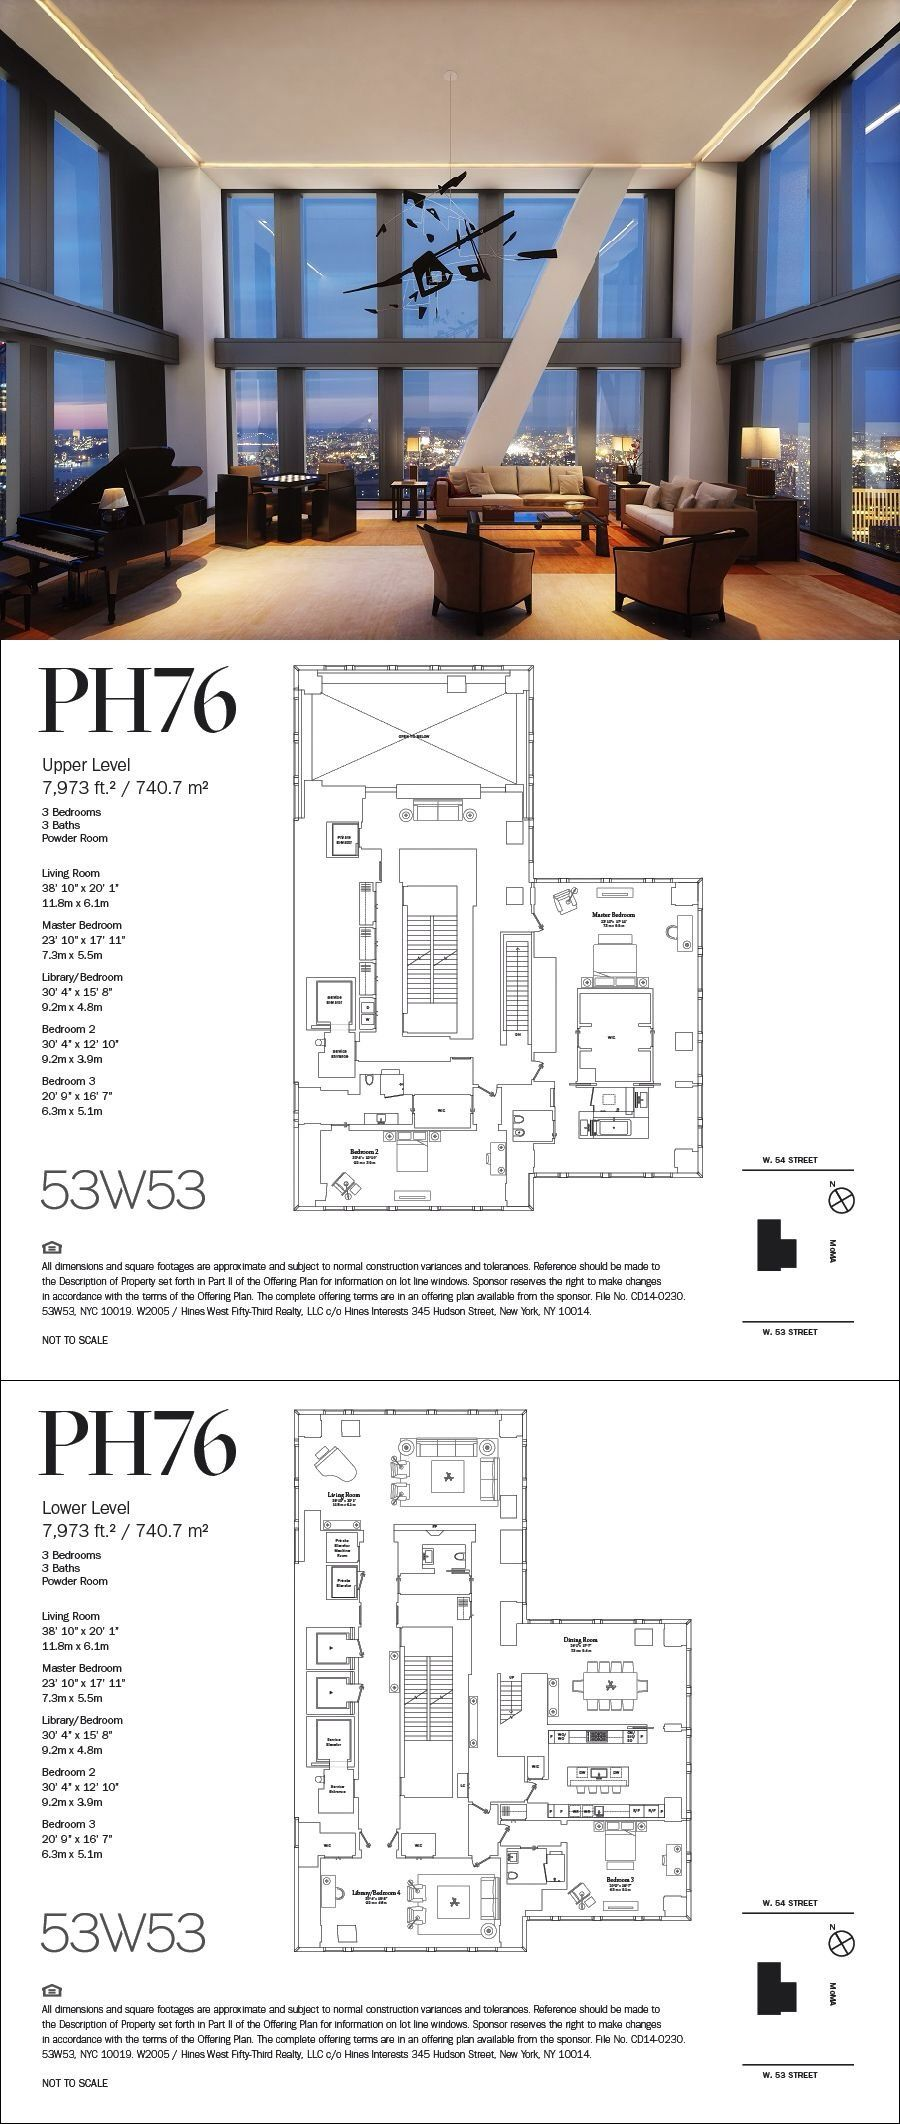 53 West 53rd Street Ph76 Nyc Real Estate House Plans Floor Plans